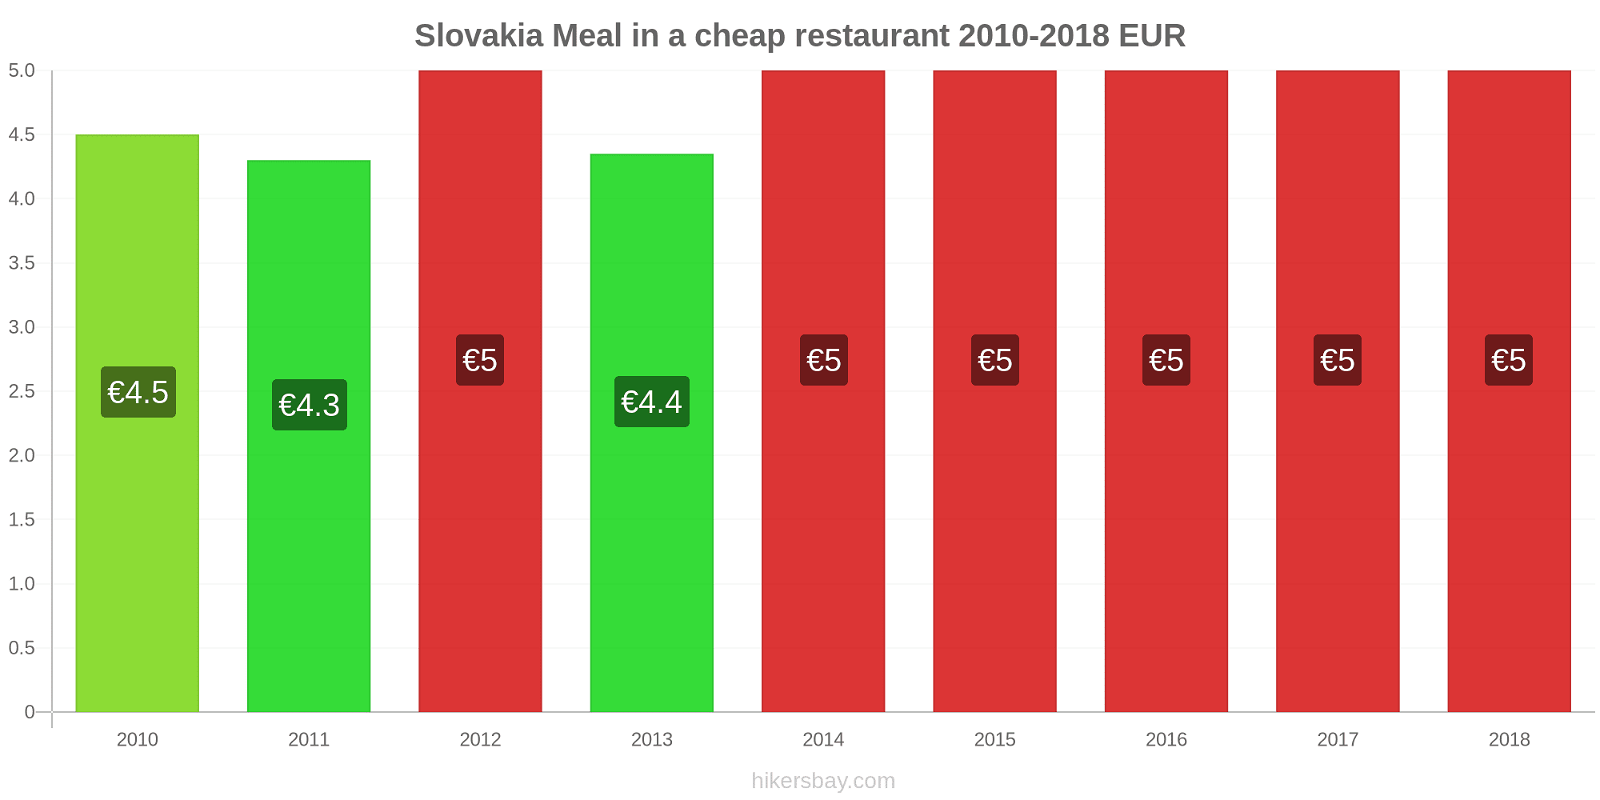 Slovakia price changes Meal in a cheap restaurant hikersbay.com